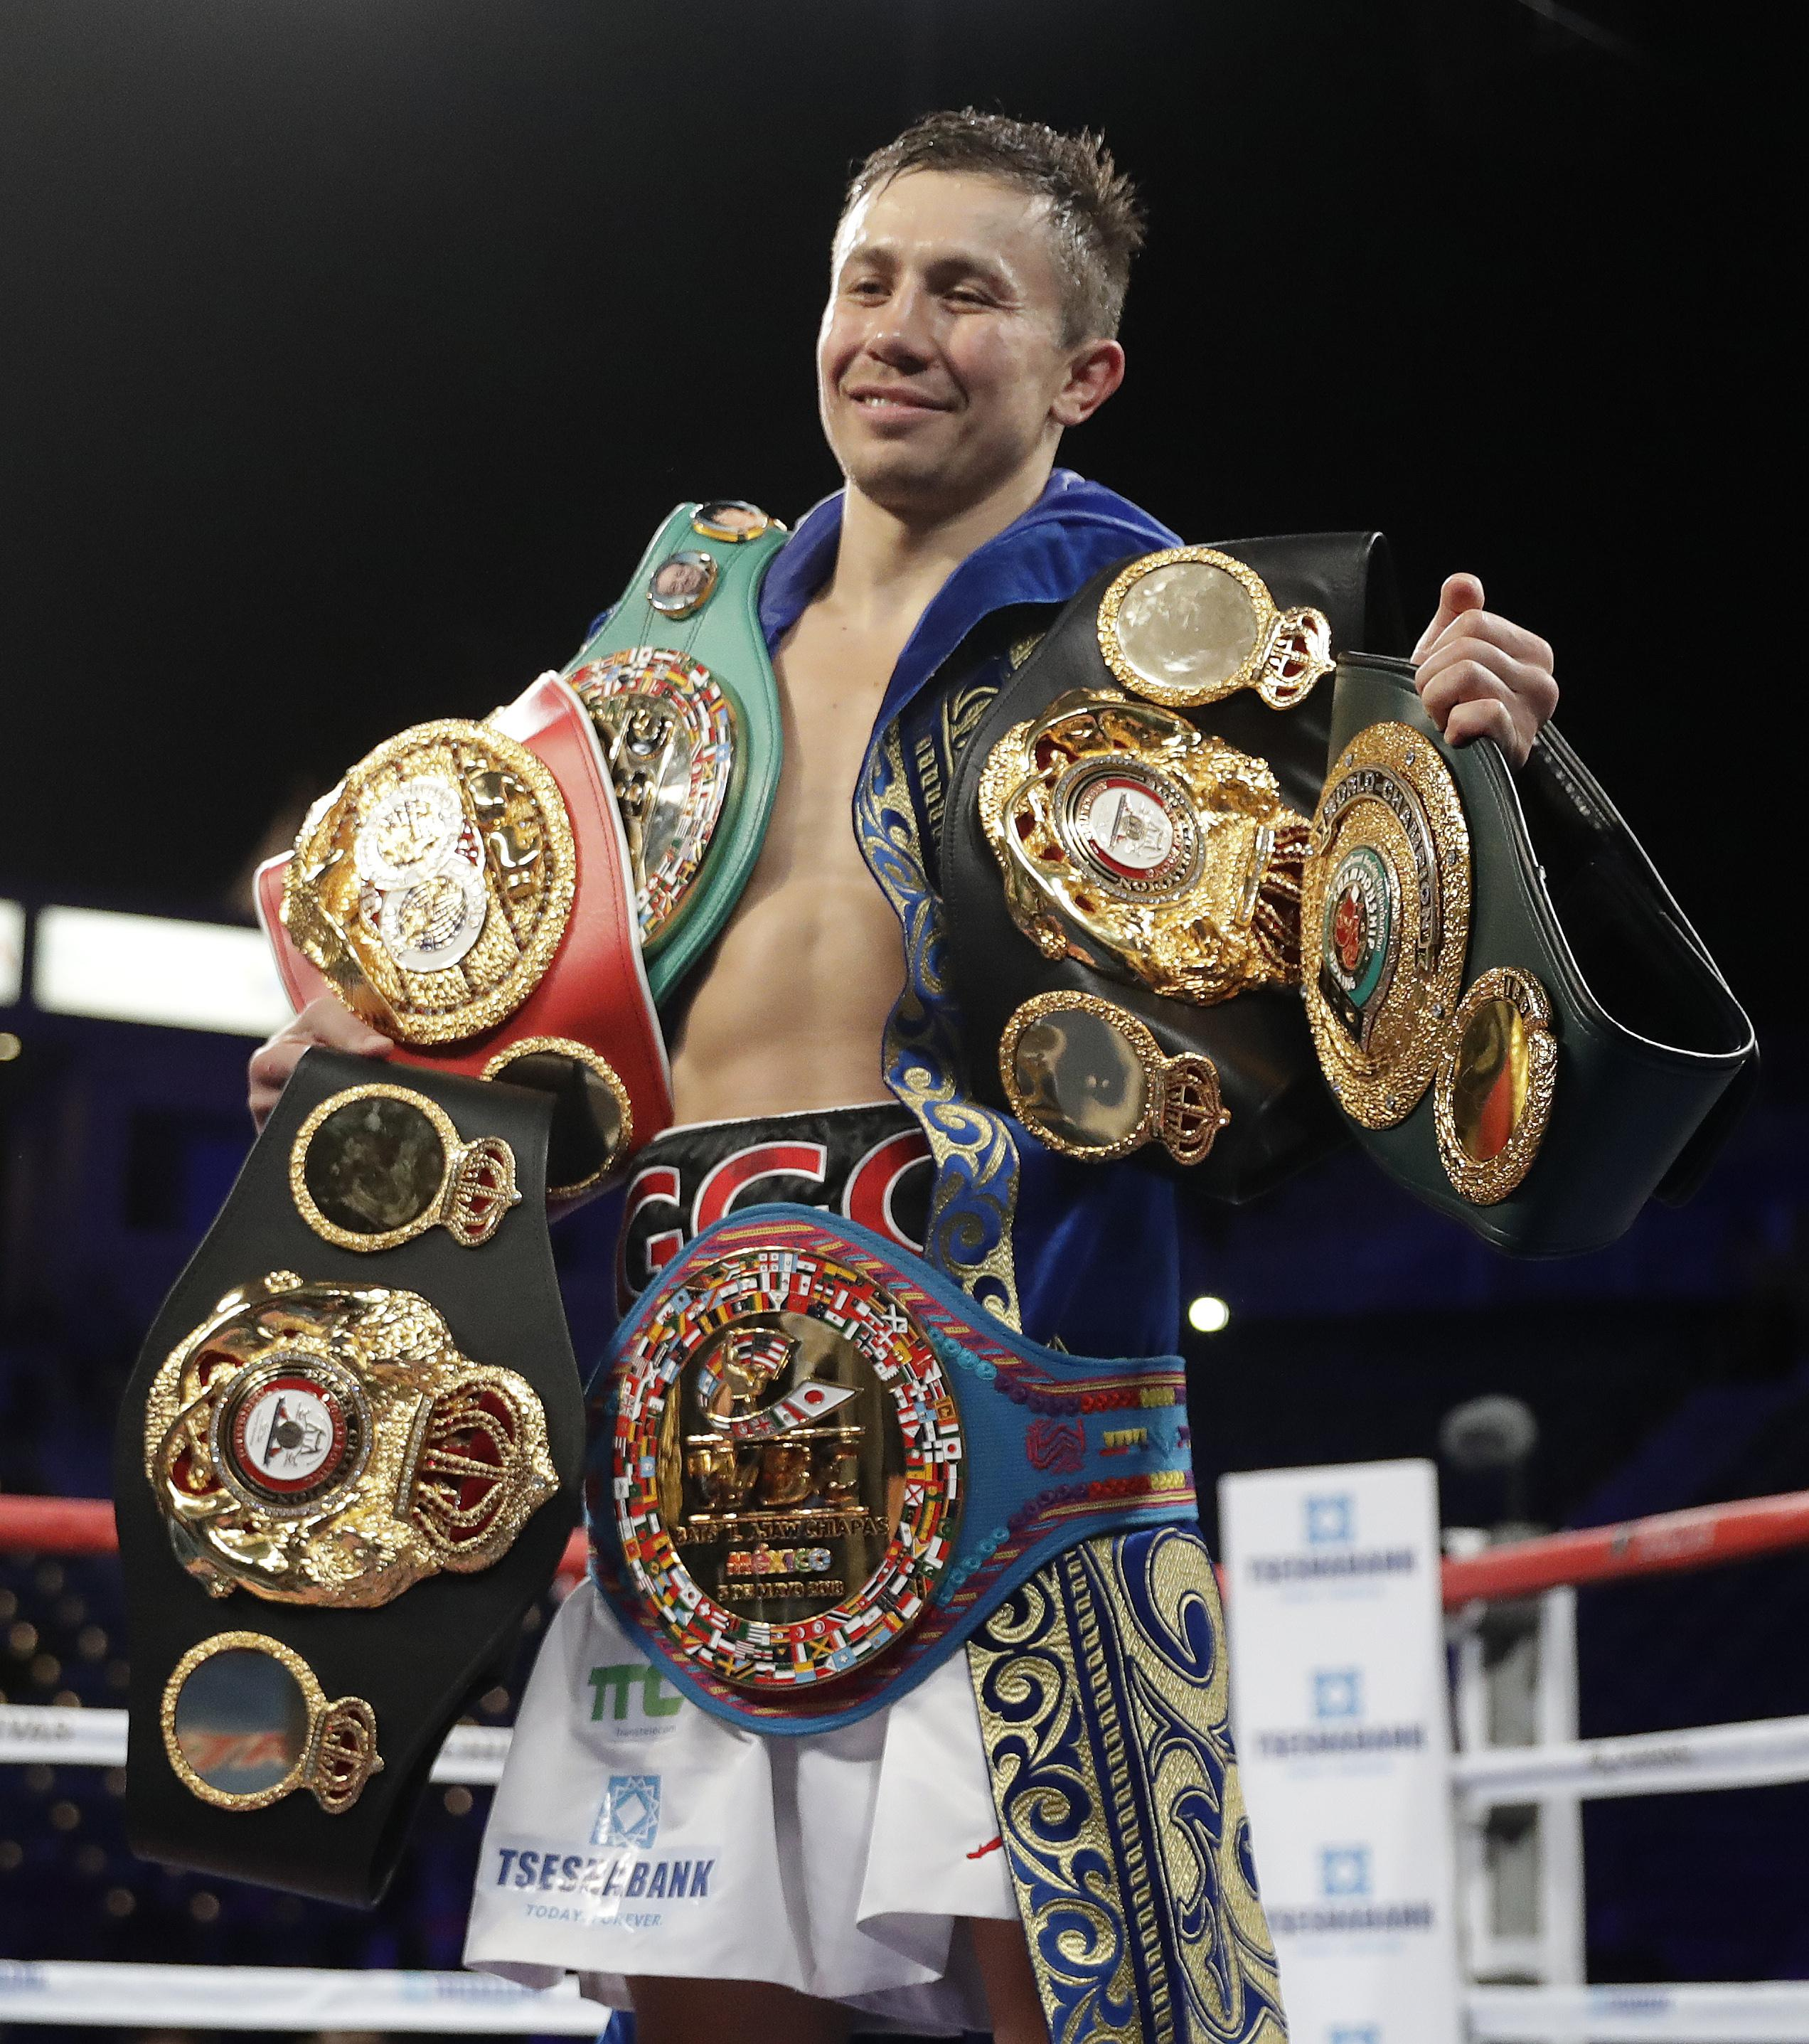 Gennady Golovkin is out to prove he is the undisputed middleweight king next month